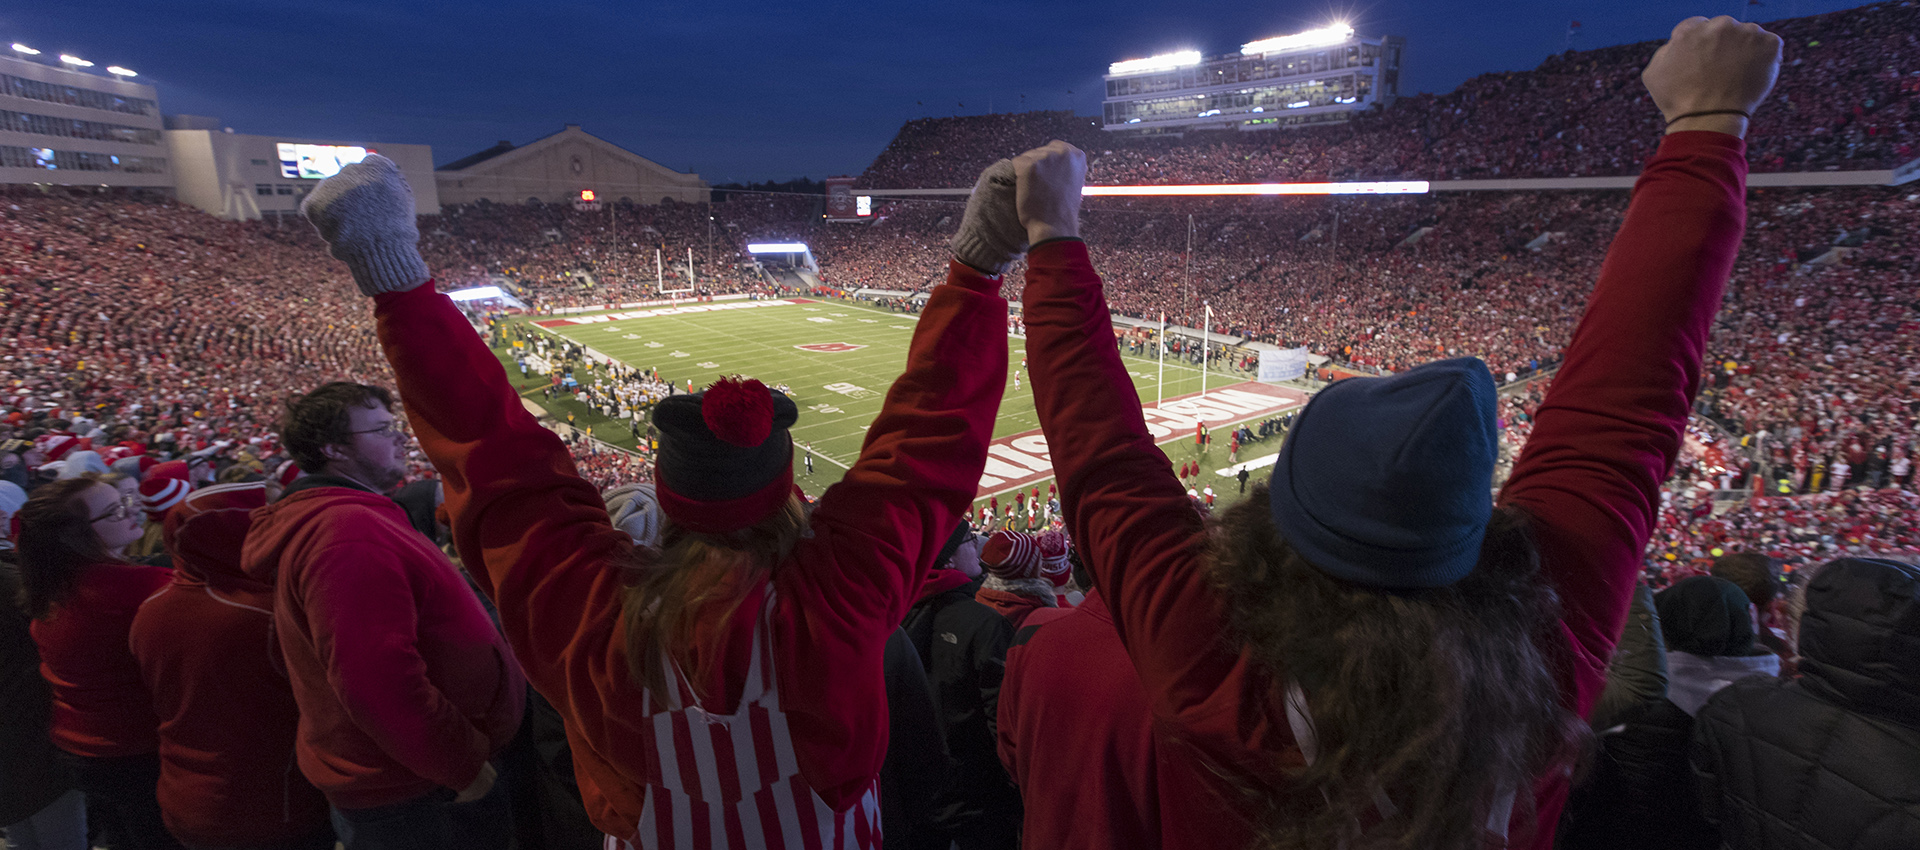 Fan Information For Badger Football Home Games Wisconsin